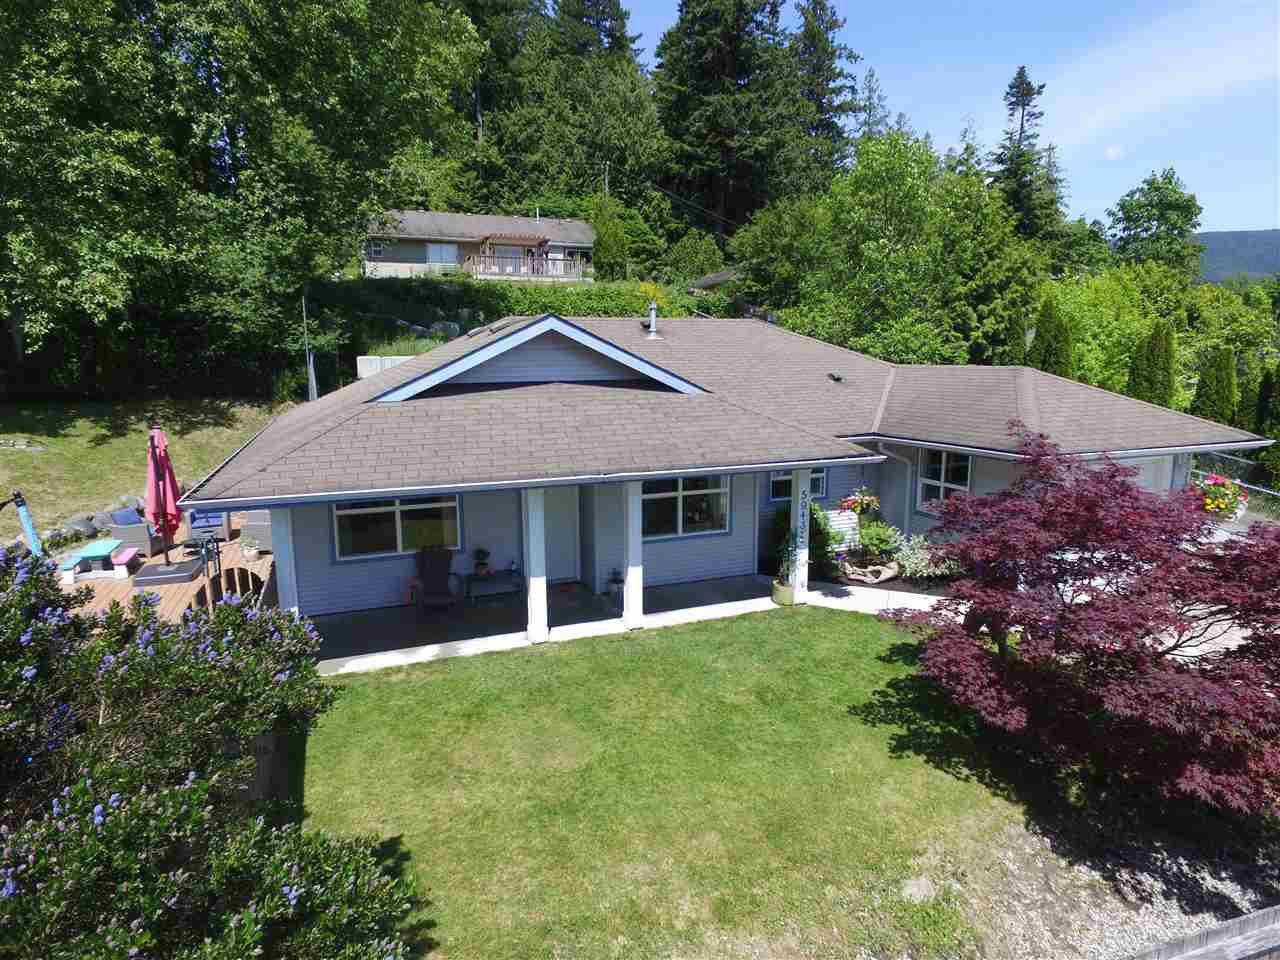 Main Photo: 5943 ST ANDREWS Place in Sechelt: Sechelt District House for sale (Sunshine Coast)  : MLS®# R2459726